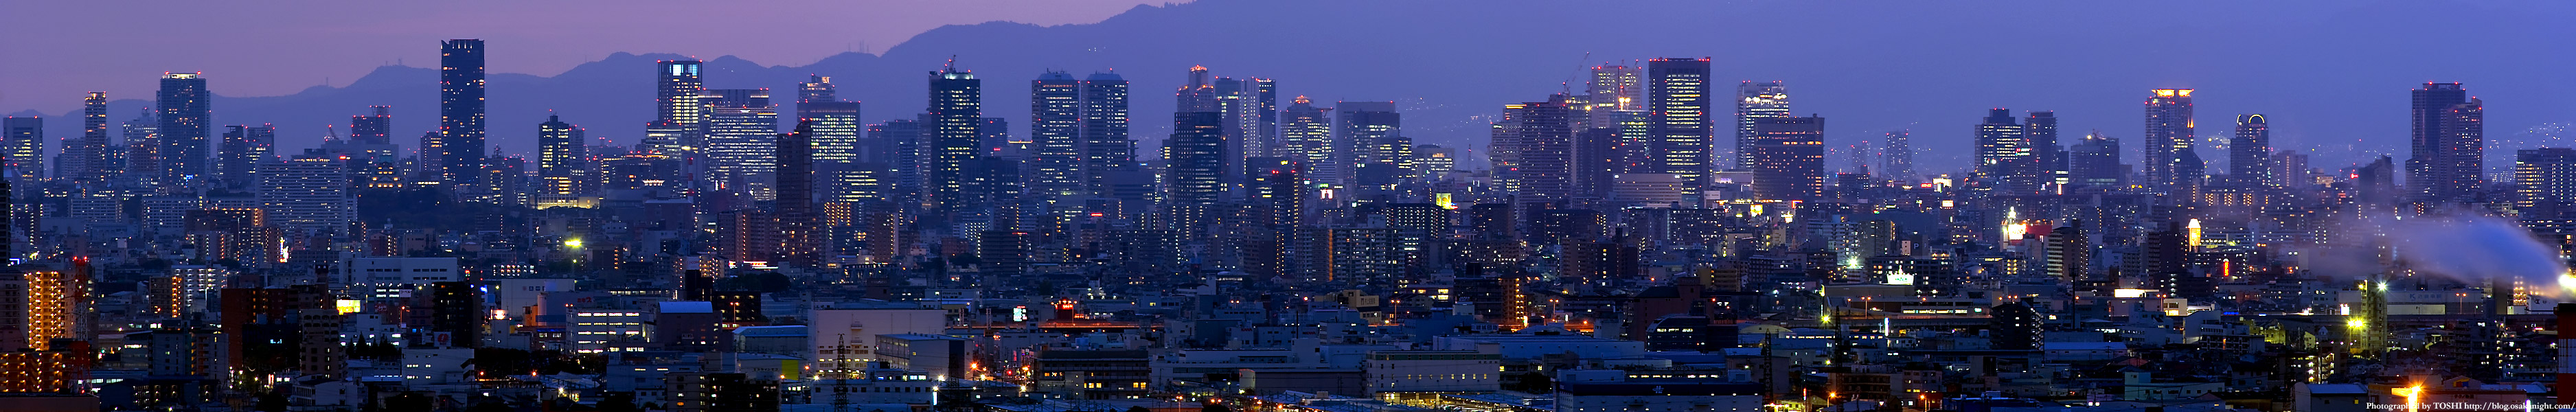 Osaka night panorama